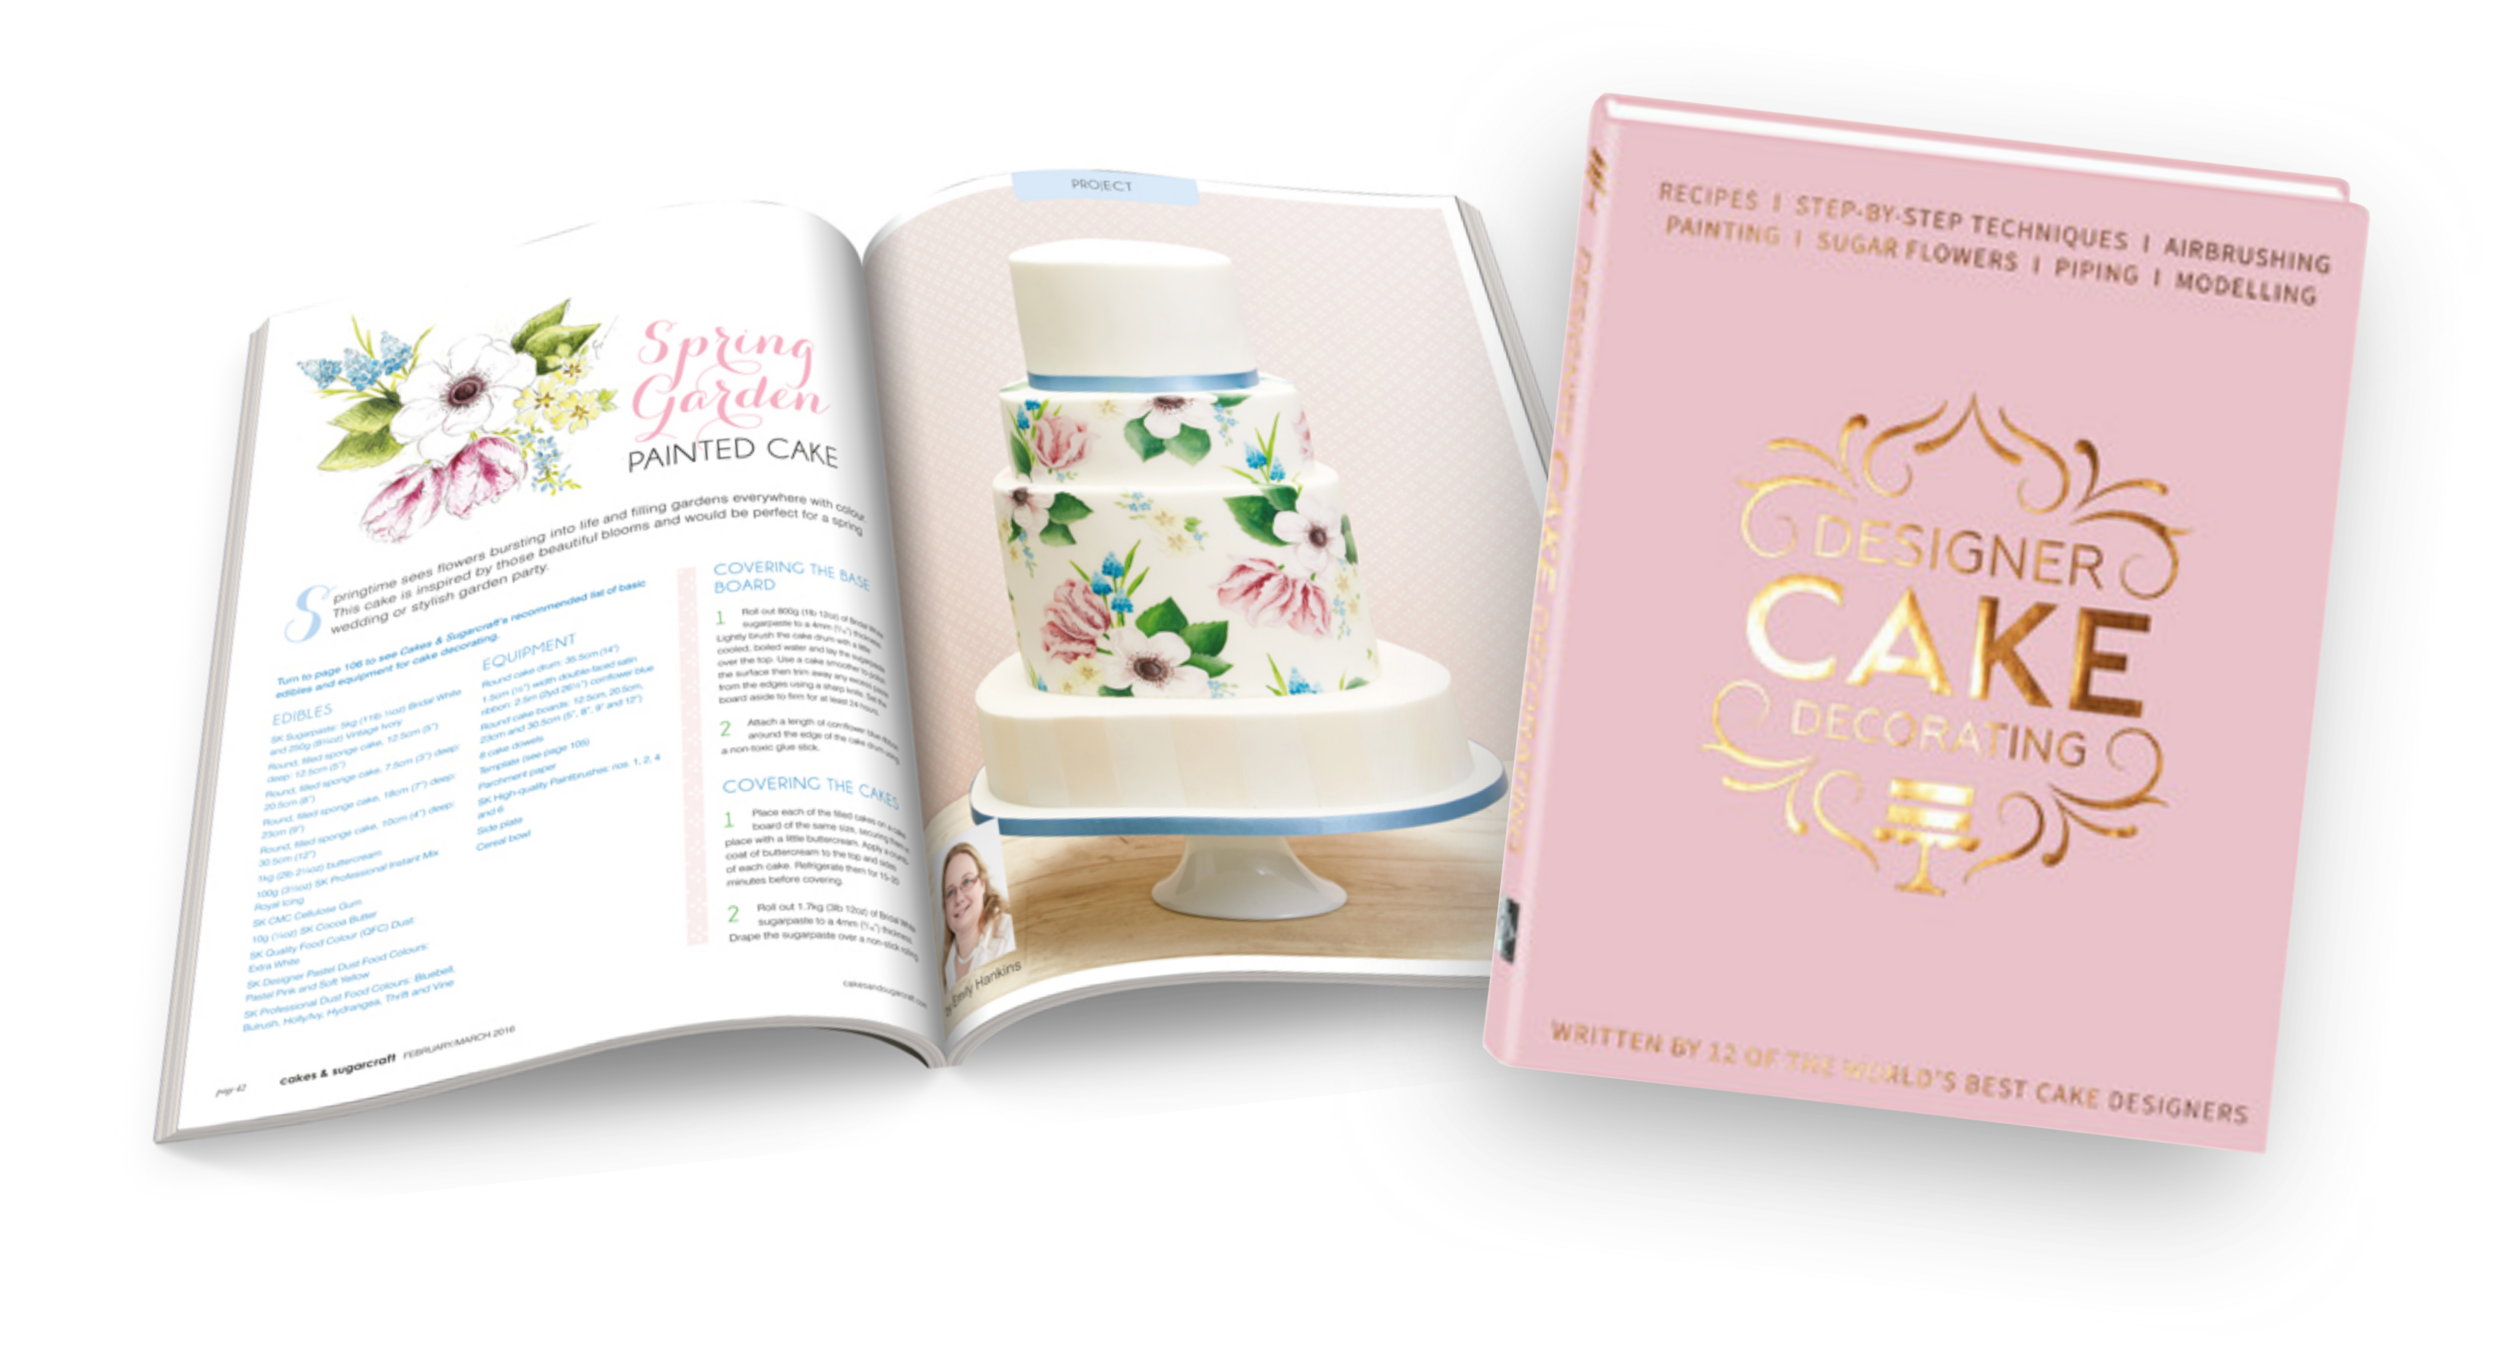 Emily Hankins Cakes - magazine and book features